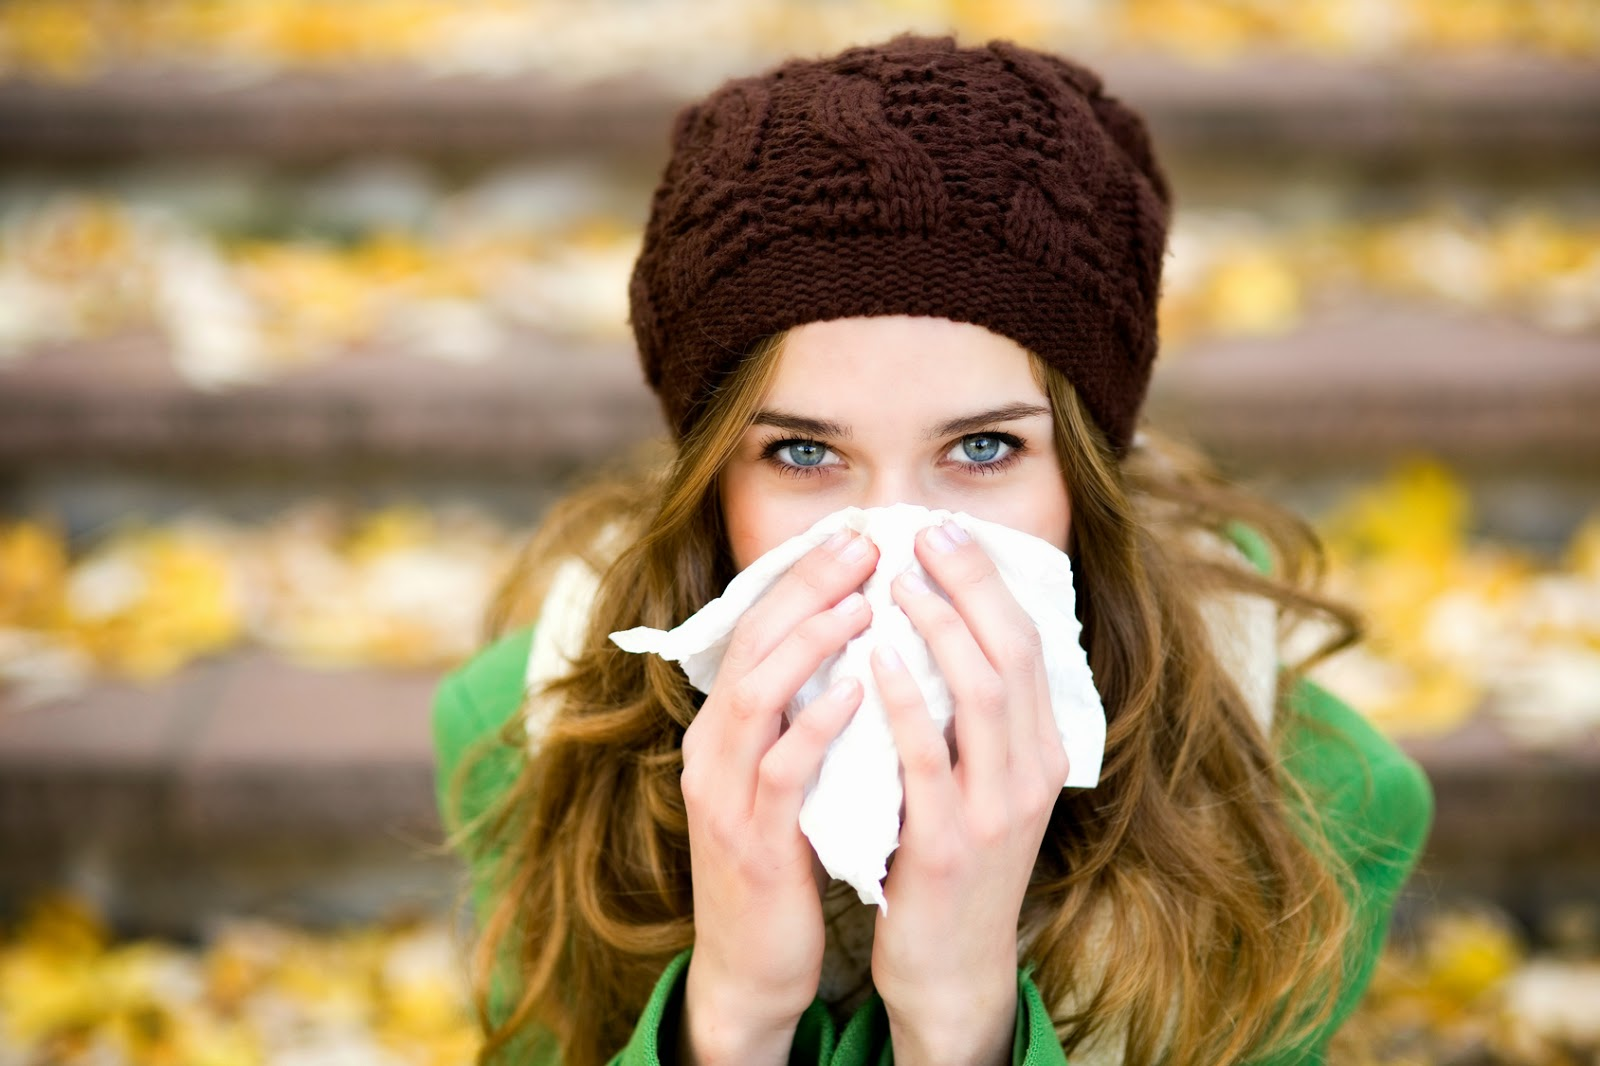 The Best Ways to Feel Better With a Cold